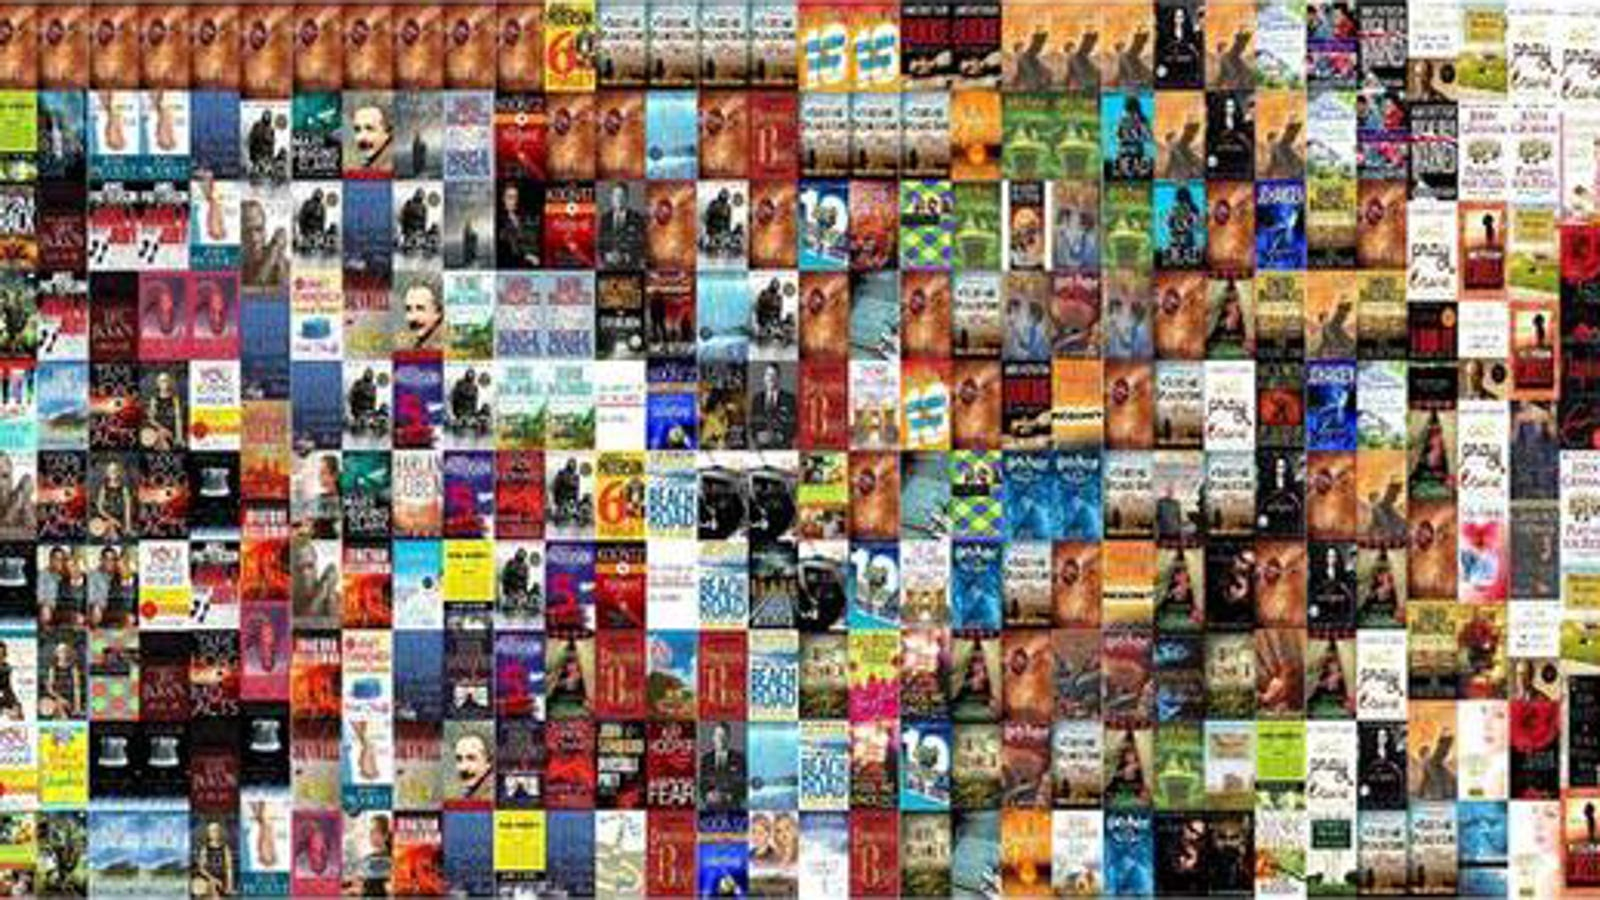 84ebe06404ce All the best selling books covers since 2000 reveal interesting trend